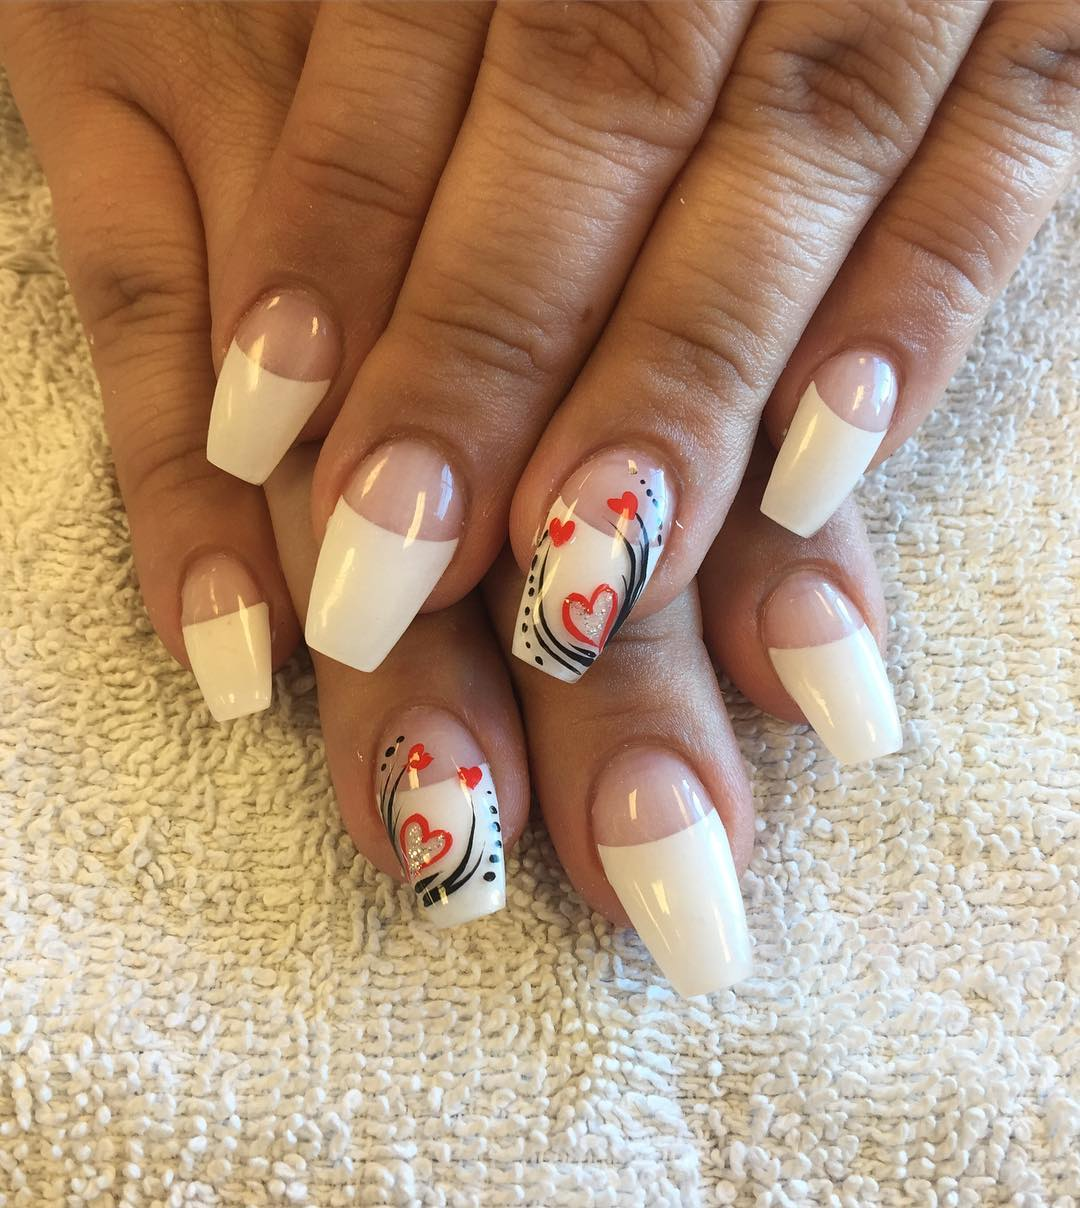 Nail art designs white tips nails gallery nail art designs white tips hd pictures prinsesfo Images